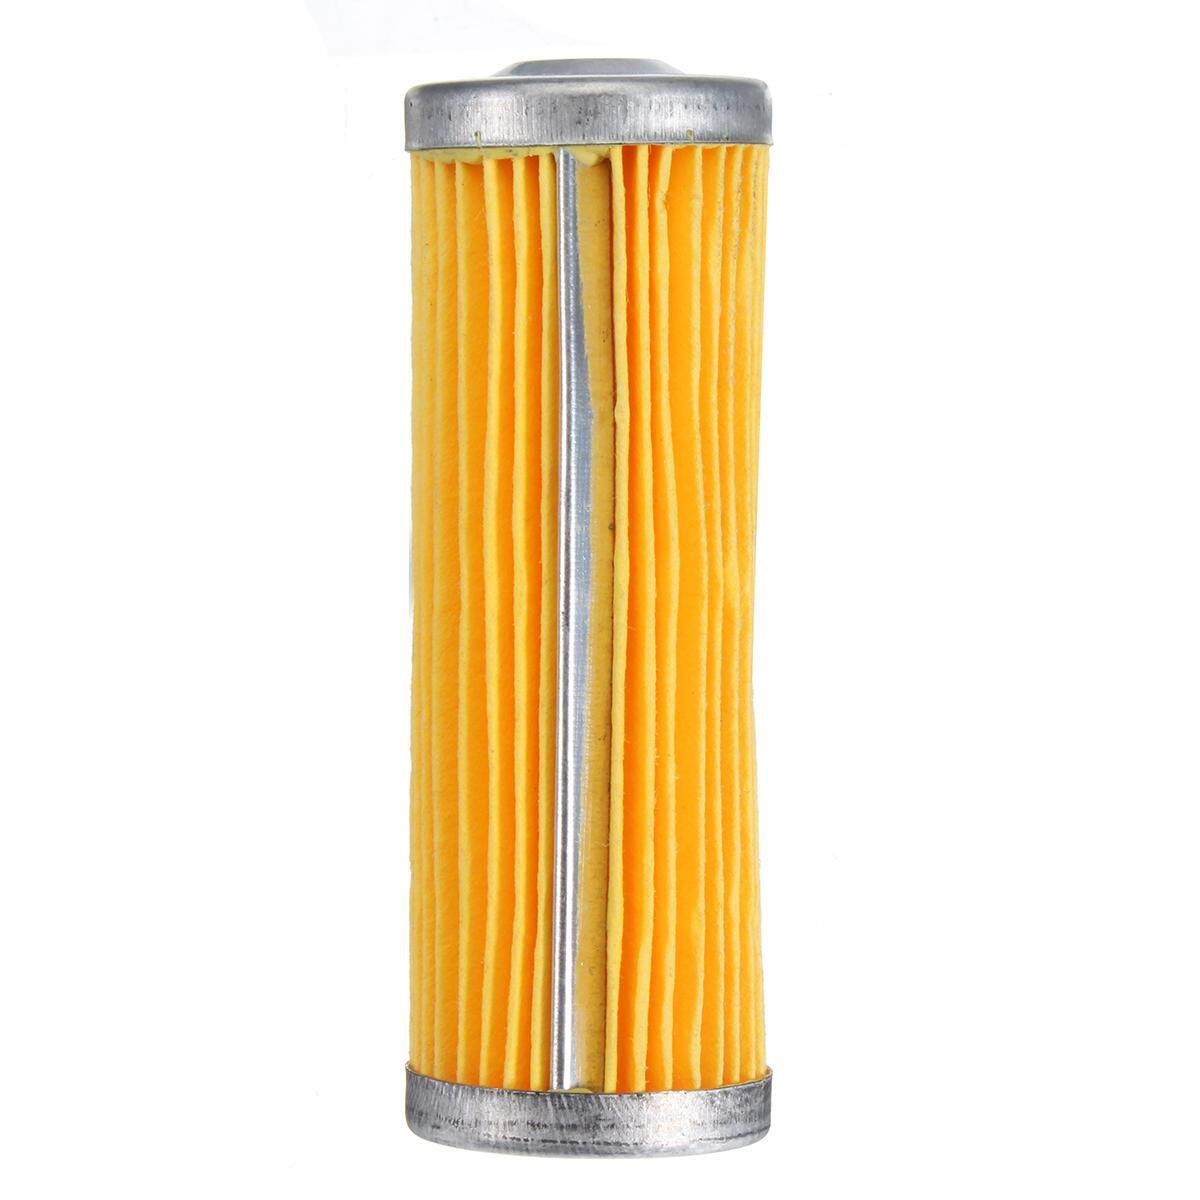 Sell Diesel Fuel Filter Cheapest Best Quality My Store 6 5l Housing Myr 11